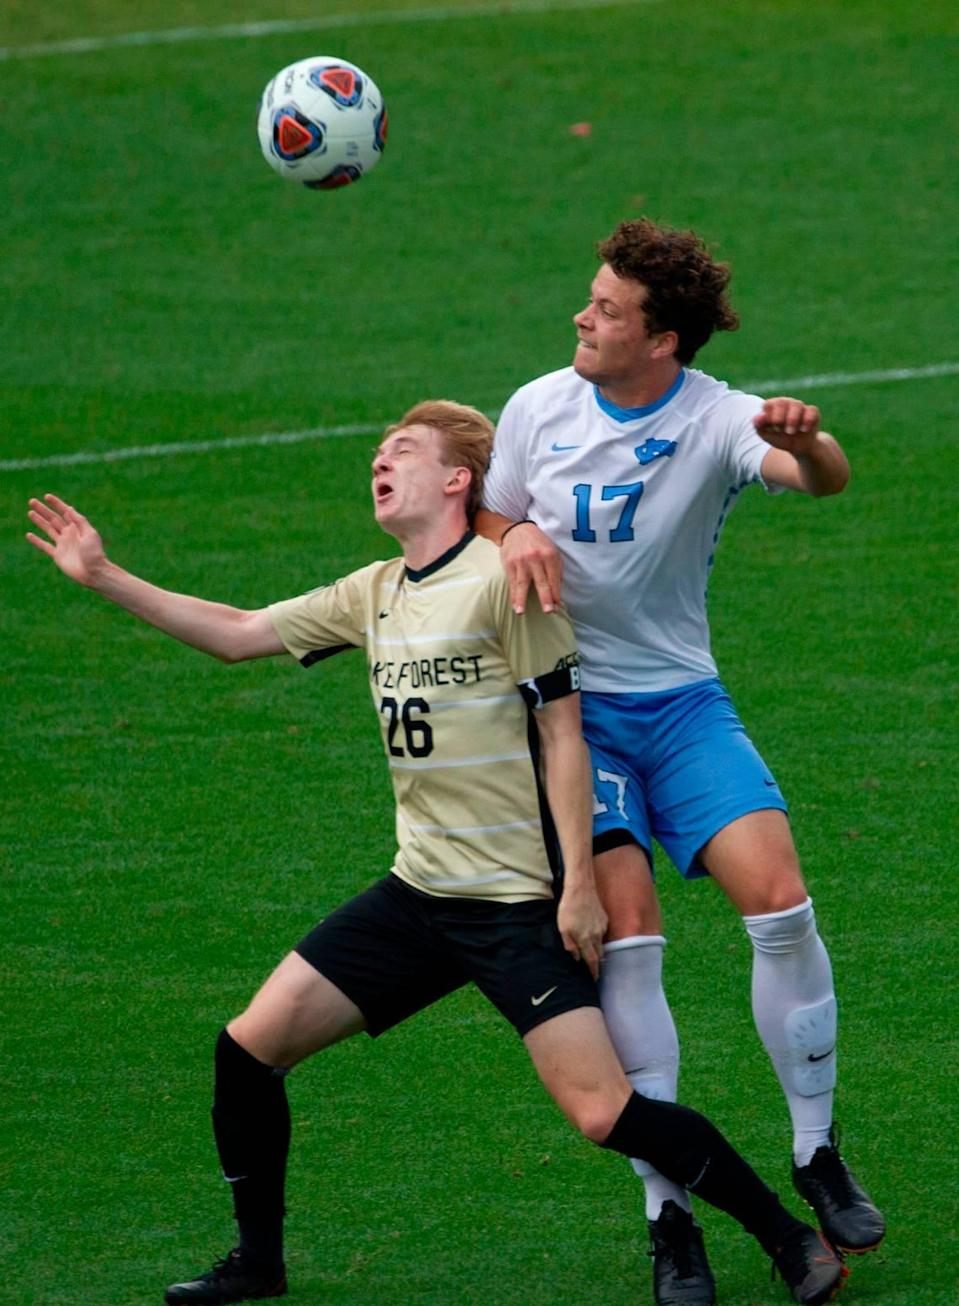 Wake Forest's Colin Thomas (26) and UNC-Chapel Hill's Cameron Fisher (17) battle for the ball during the Division I Men's Soccer Championship quarterfinals at WakeMed Soccer Park in Cary Monday, May 10, 2021.